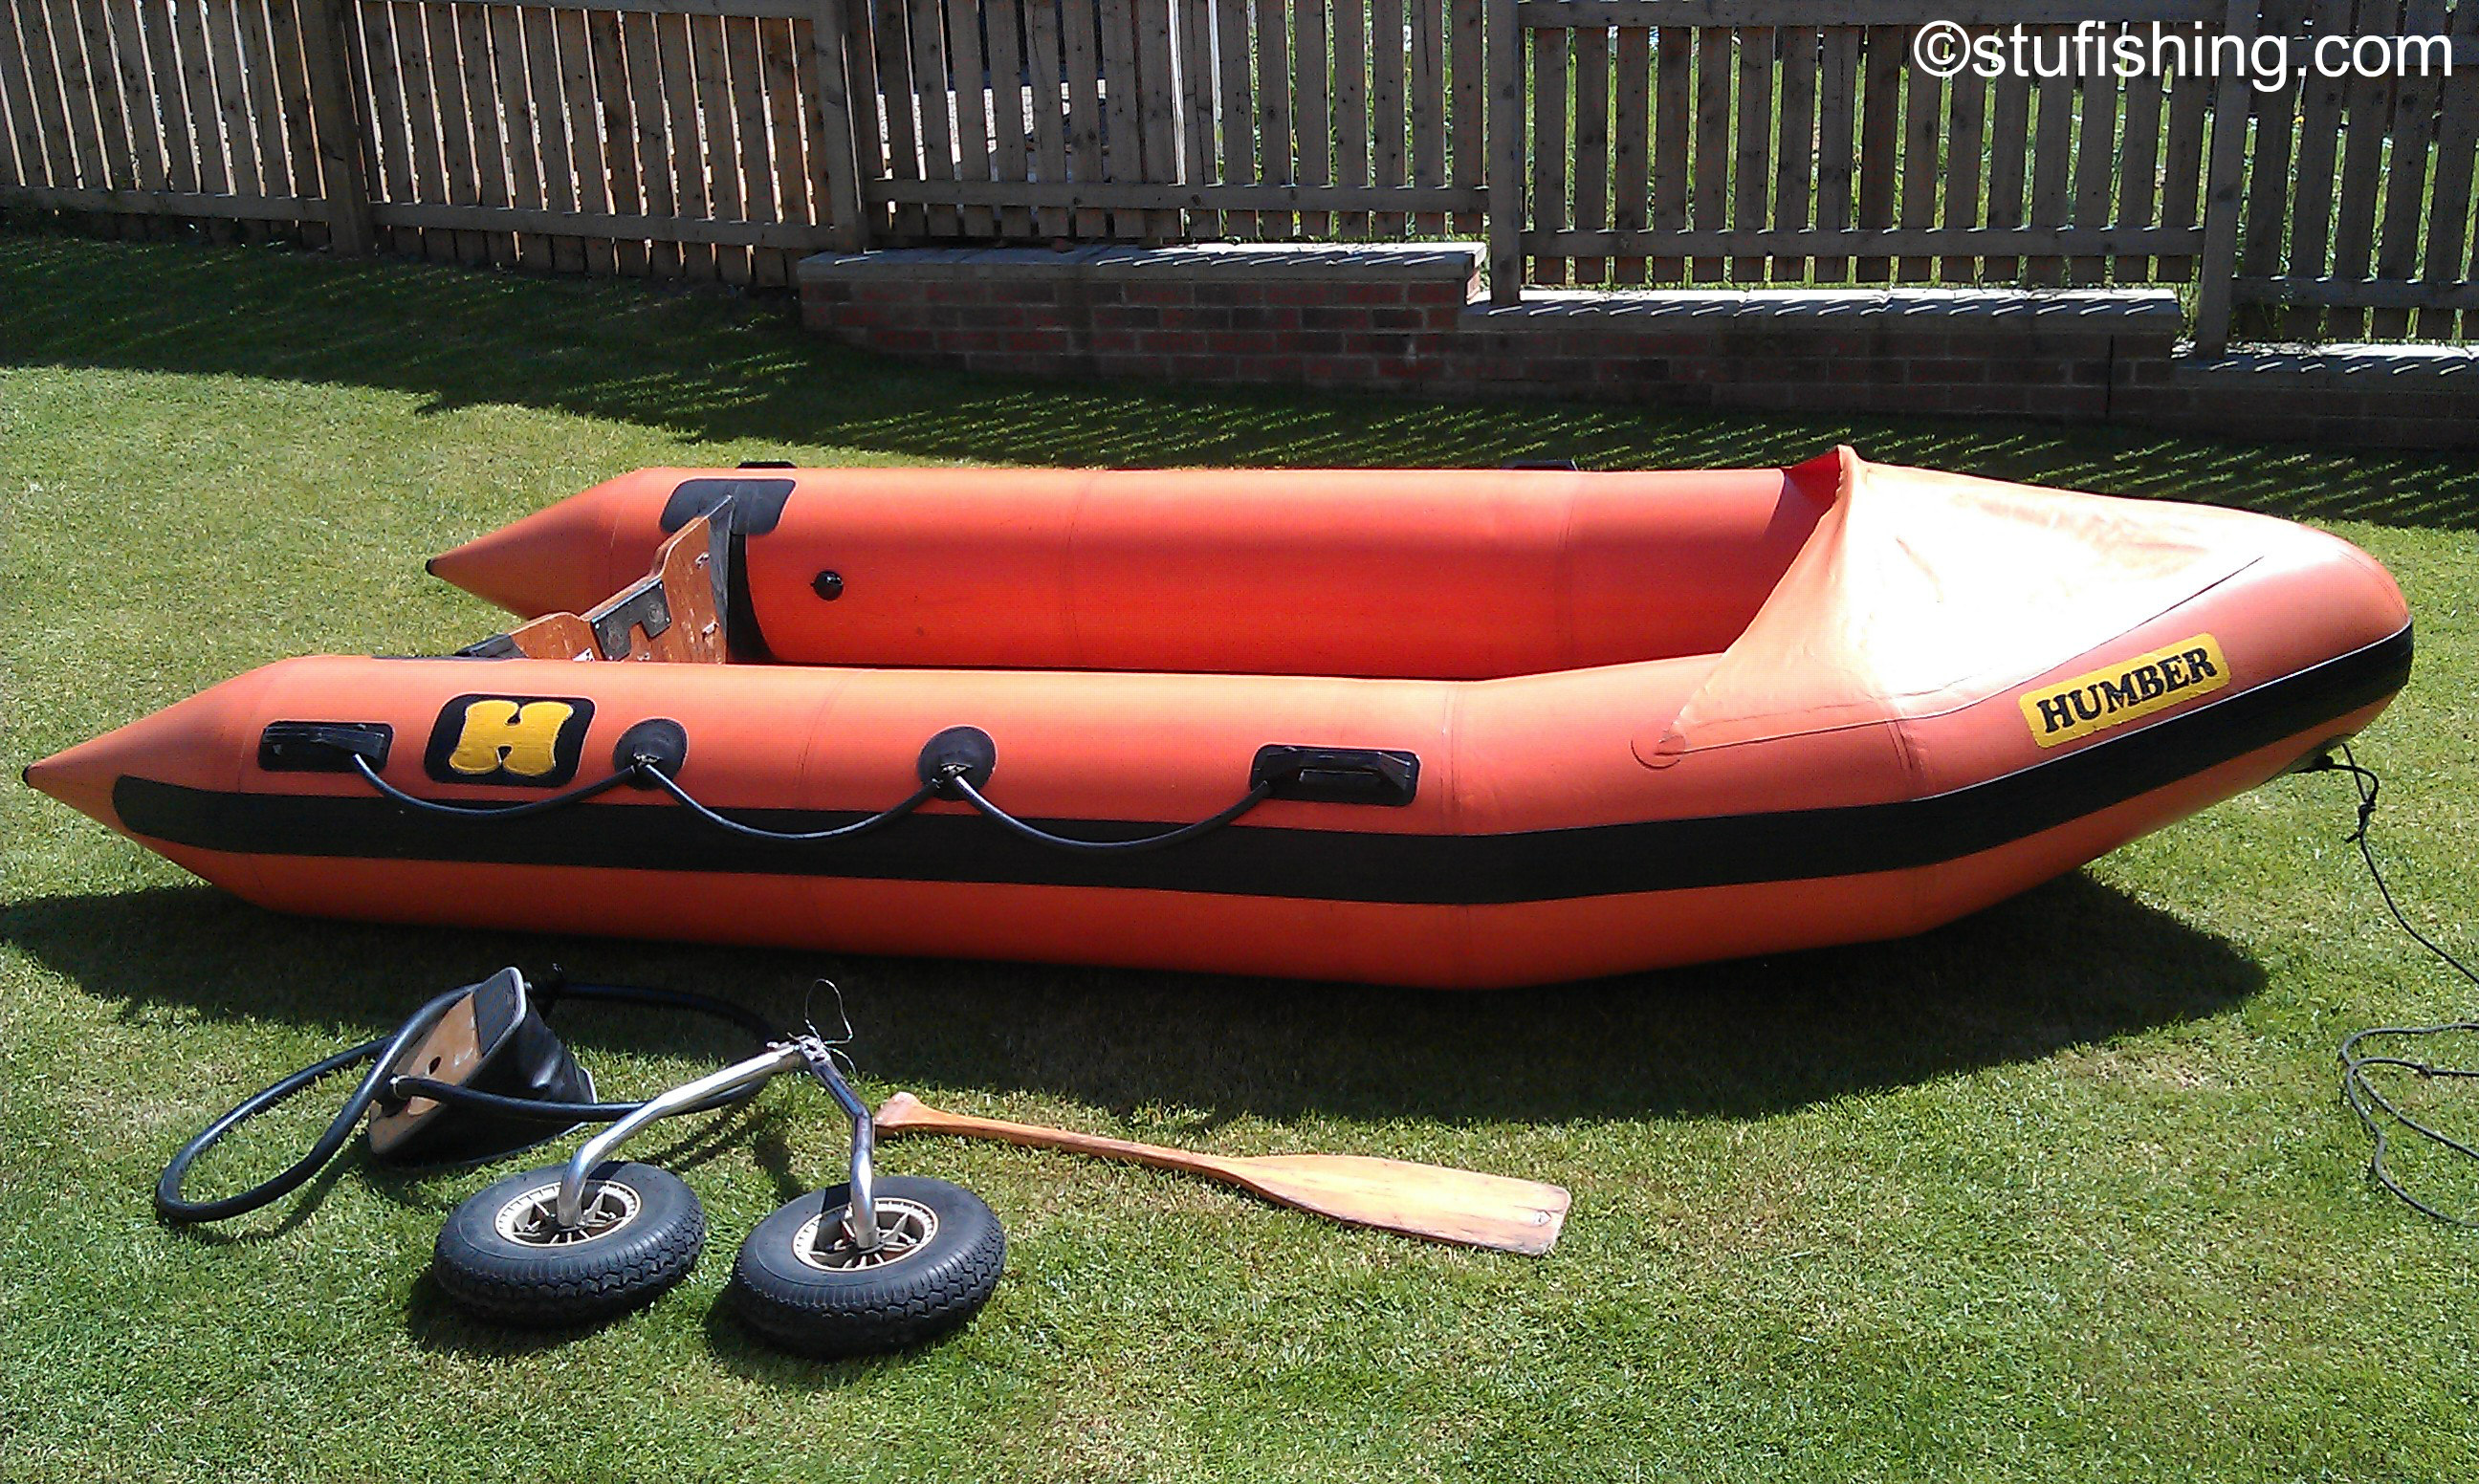 My Humber Inflatable Boat – My First SIB